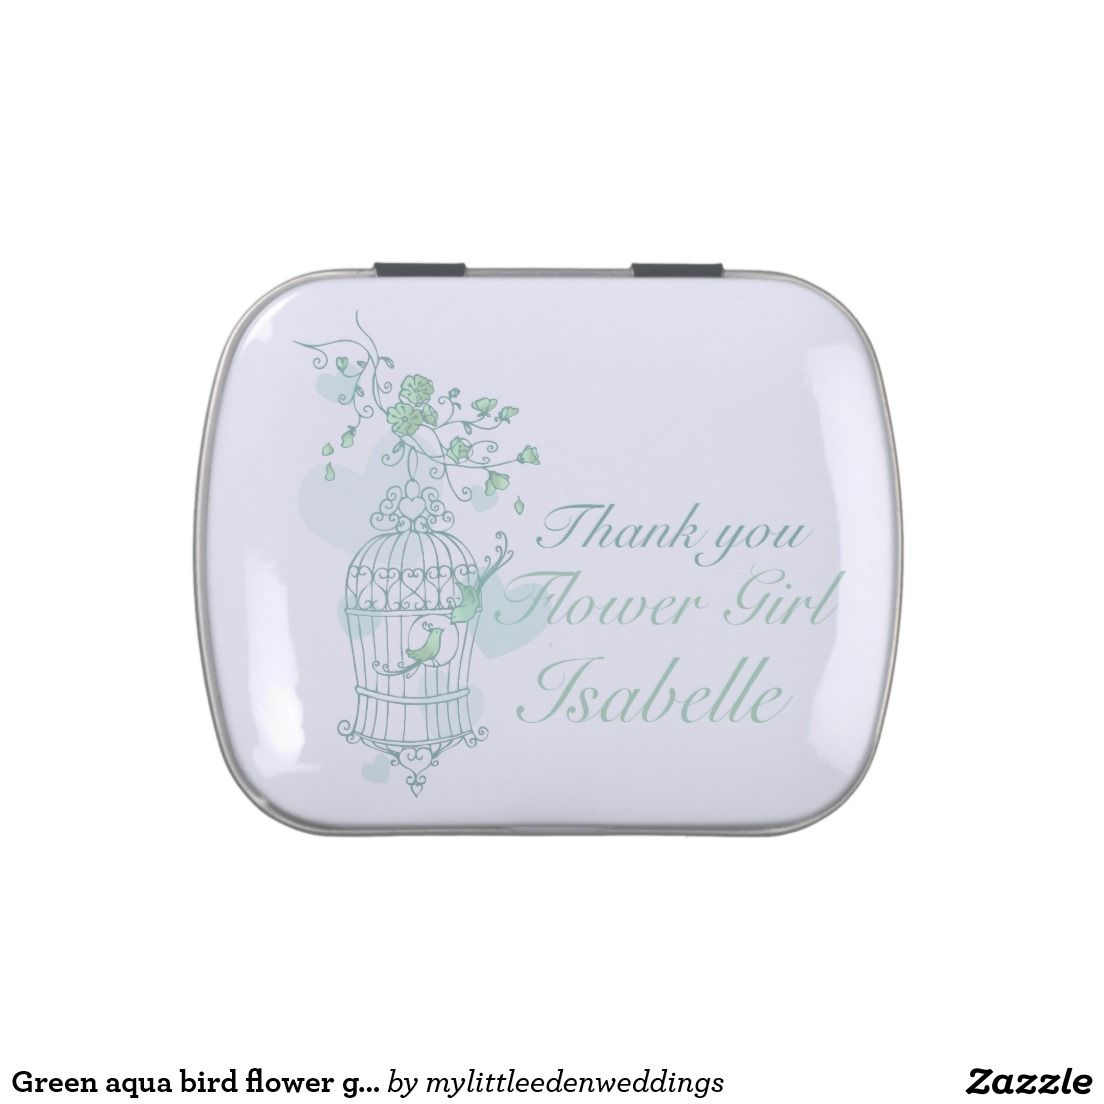 Green aqua bird flower girl wedding favor candy jelly belly tins ...